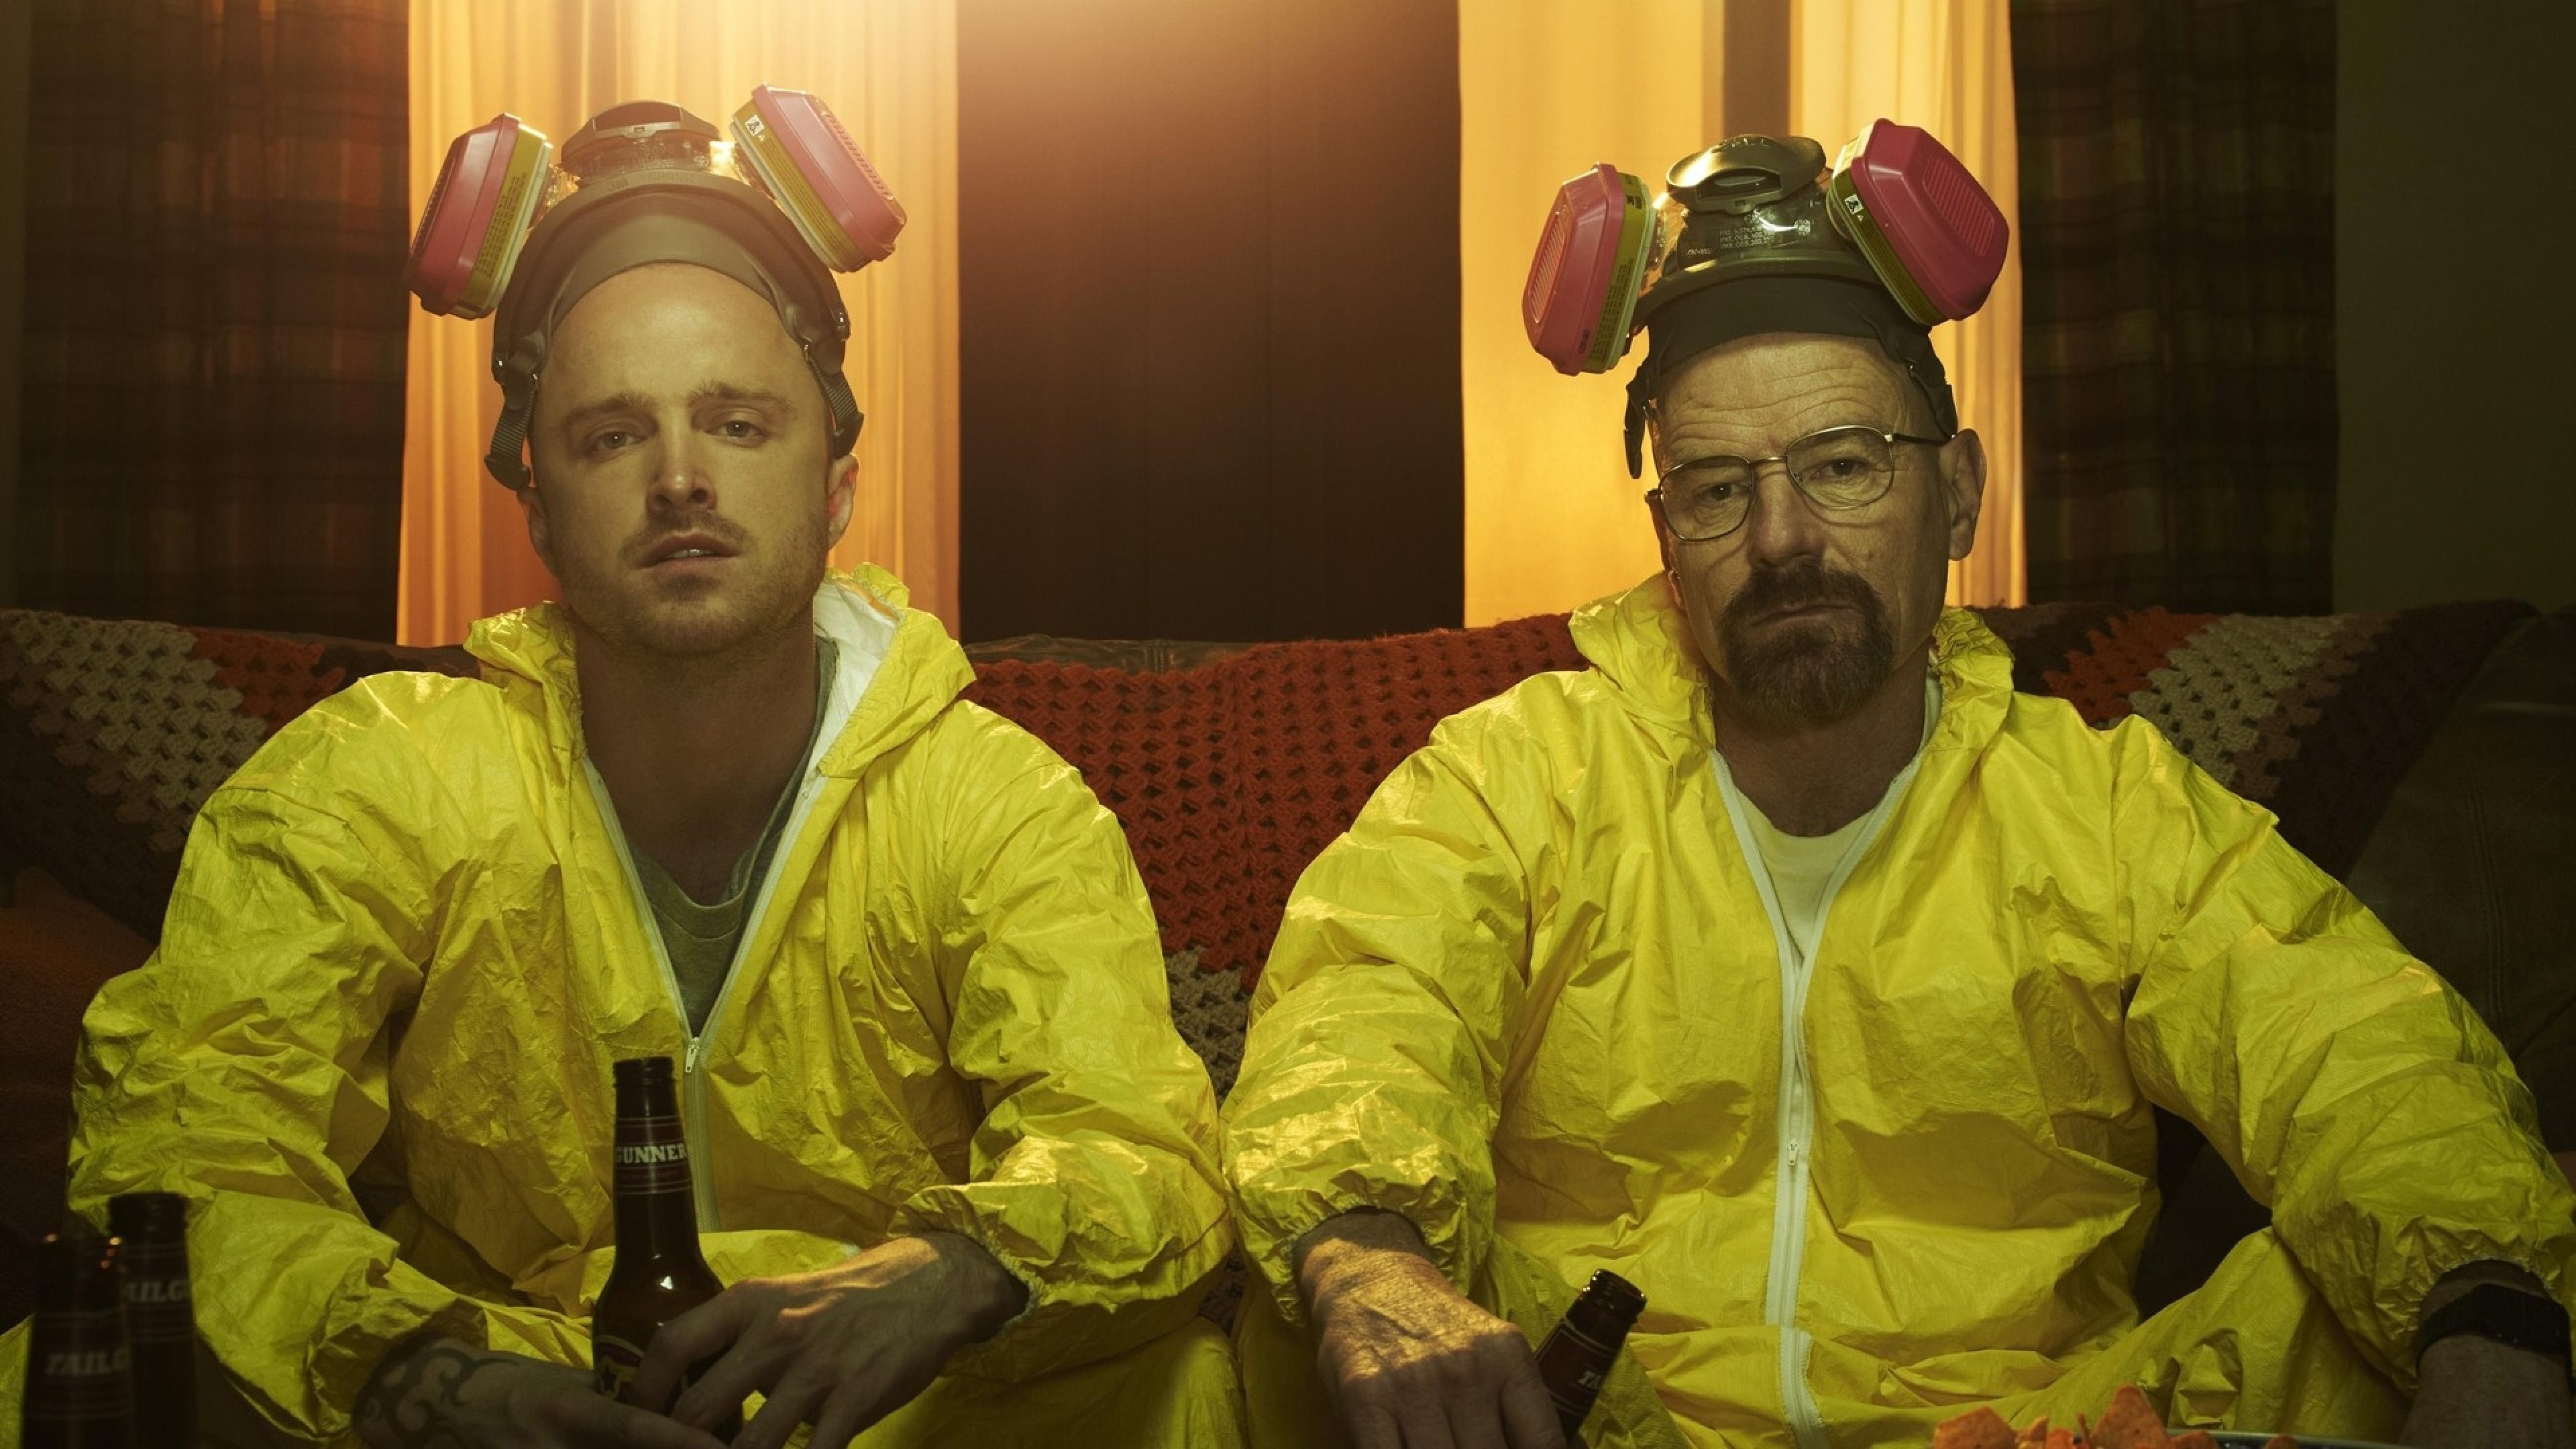 3840x2160 Preview wallpaper breaking bad, walter white, jesse pinkman